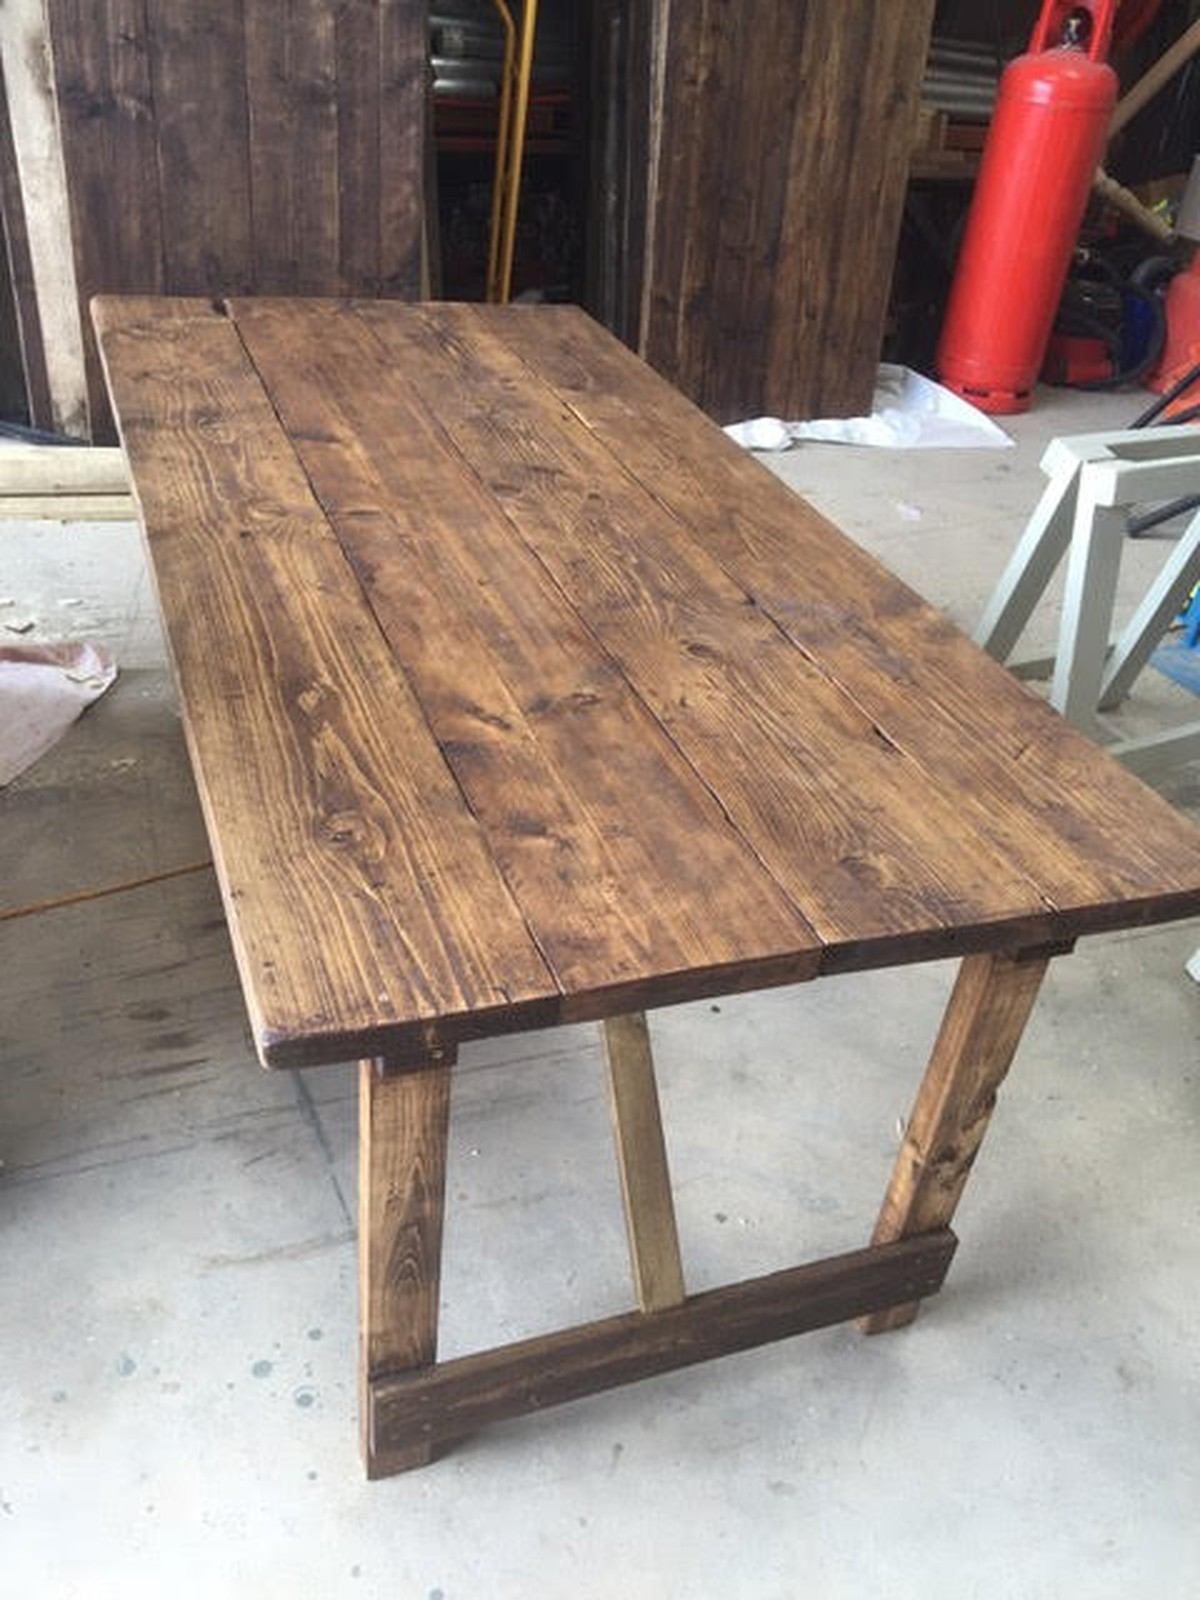 Secondhand Chairs And Tables Trestle Tables Rustic